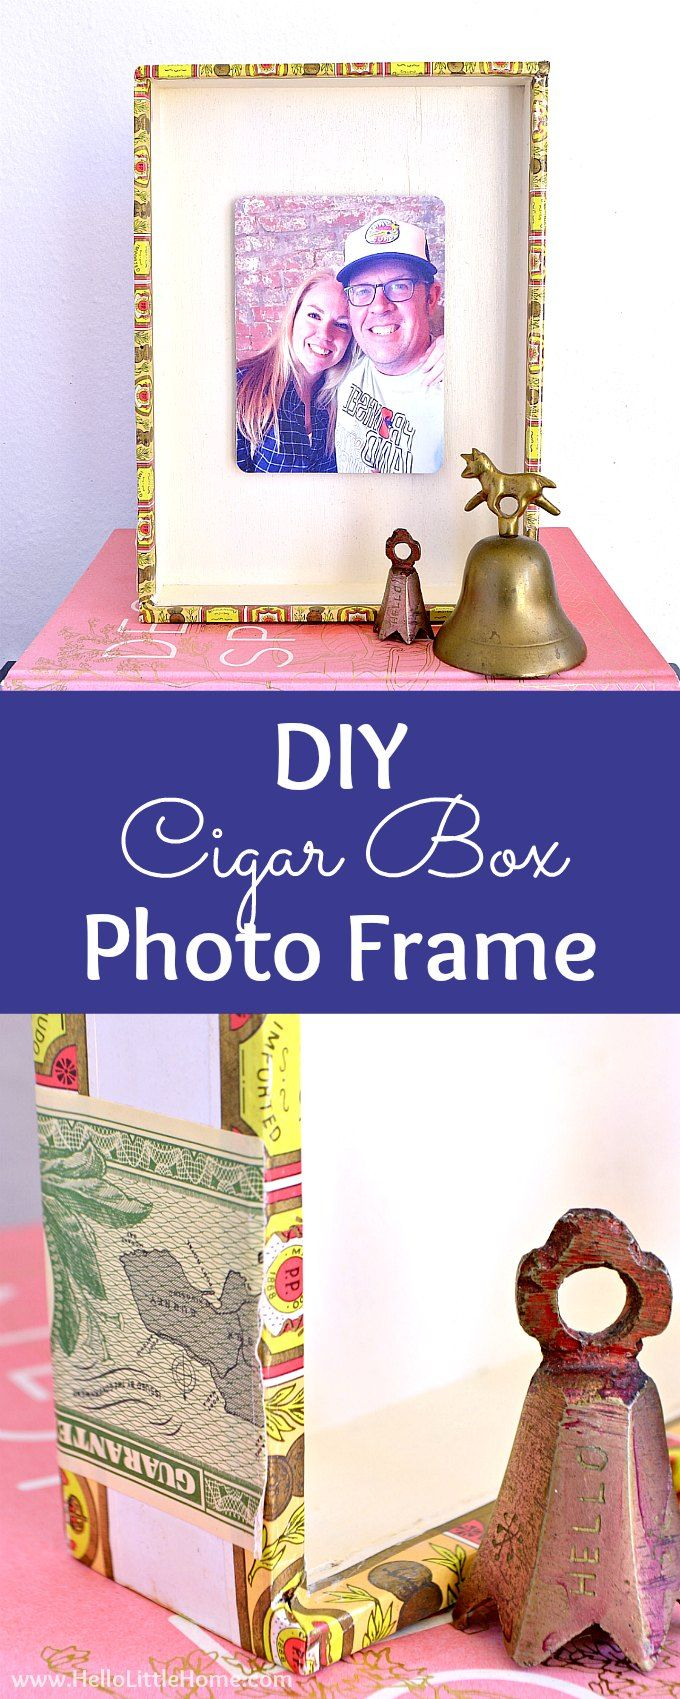 DIY Cigar Box Photo Frame tutorial! Looking for DIY photo frame ideas? Learn how to make a DIY picture frame from a repurposed cigar box. This easy cigar box craft is a simple vintage inspired wood frame for a fave photograph. A unique cigar box craft idea that's a creative gift for boyfriends, kids, friends, or moms or a home decor decoration you can hang on the wall. | Hello Little Home #cigarbox #cigarboxcraft #diyphotoframe #photocraft #photograph #pictureframes #diypictureframe via